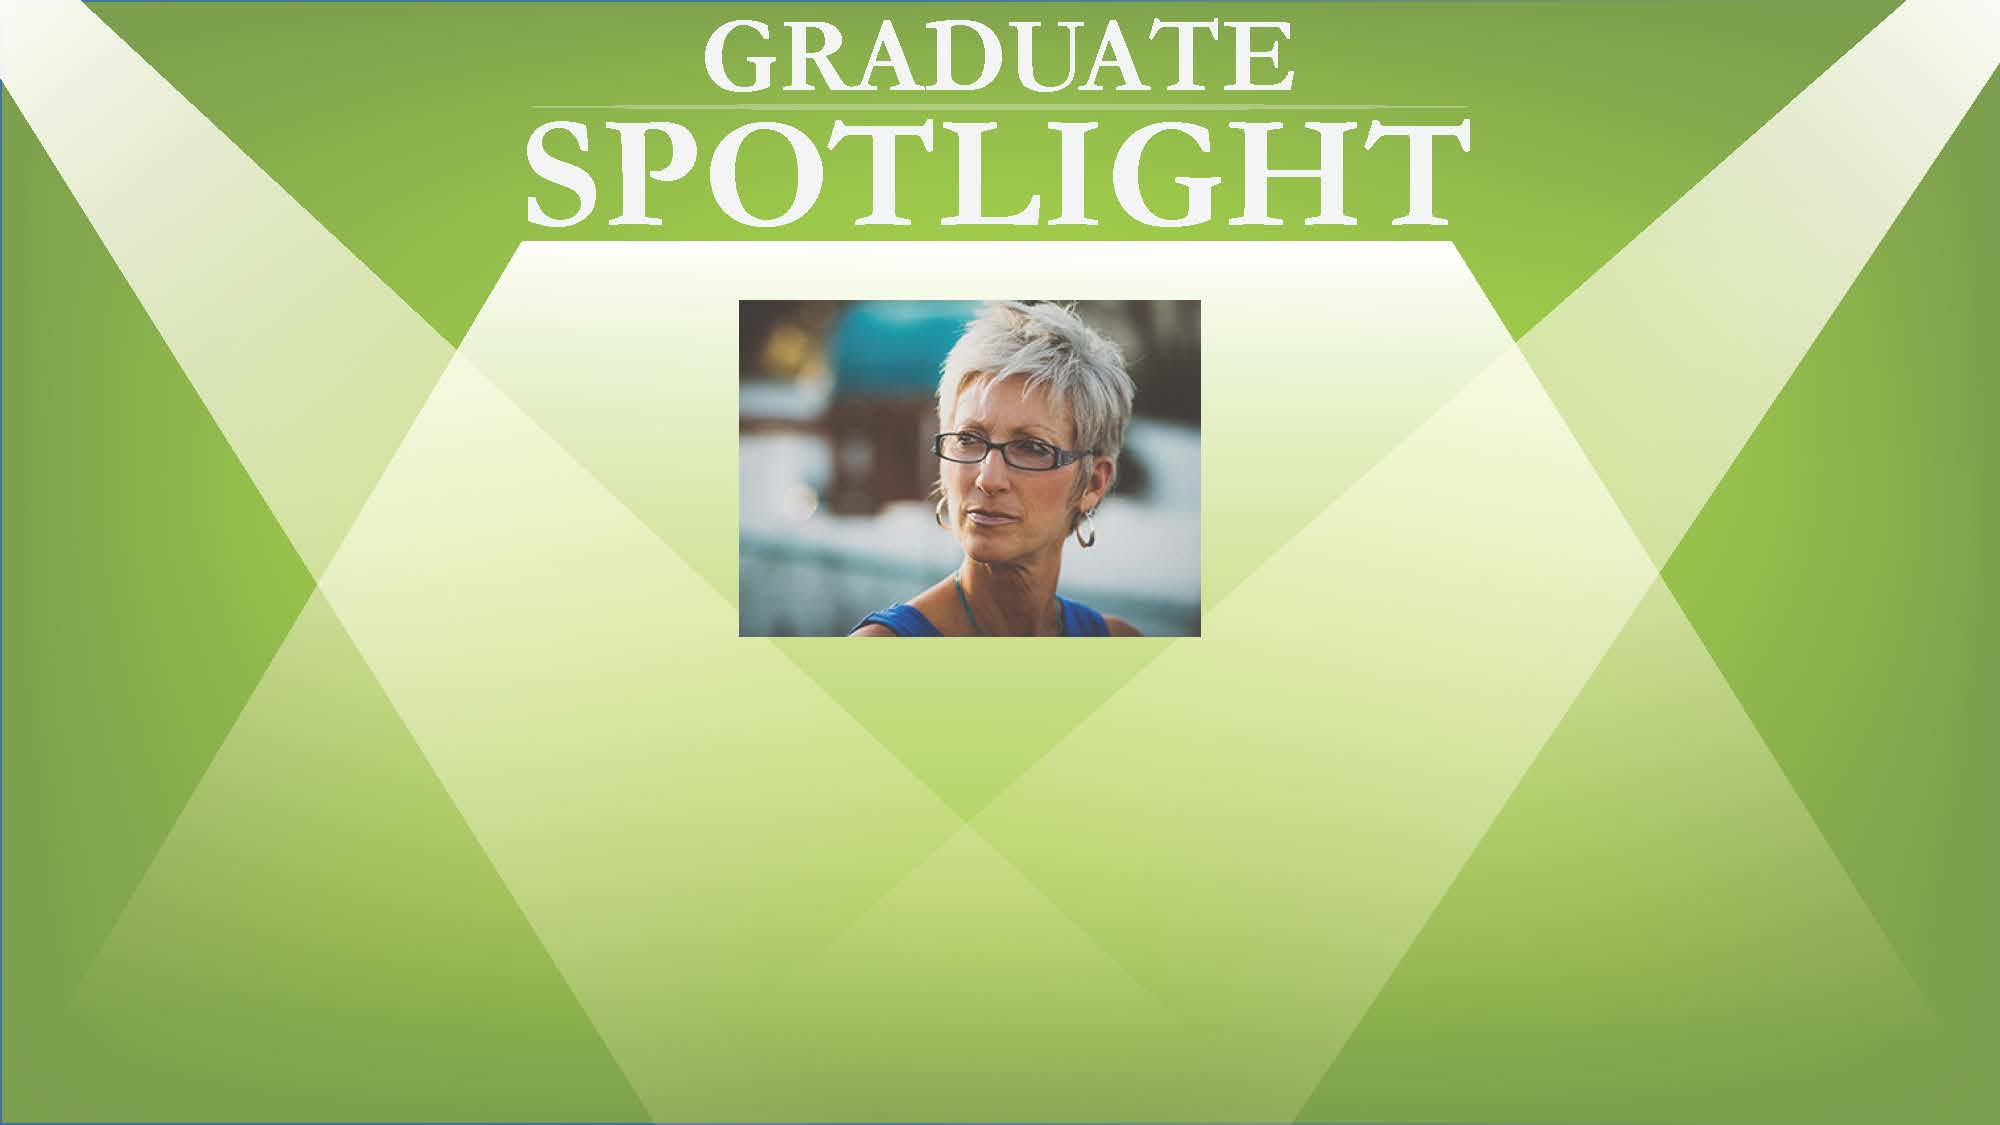 Communication Graduate Spotlight